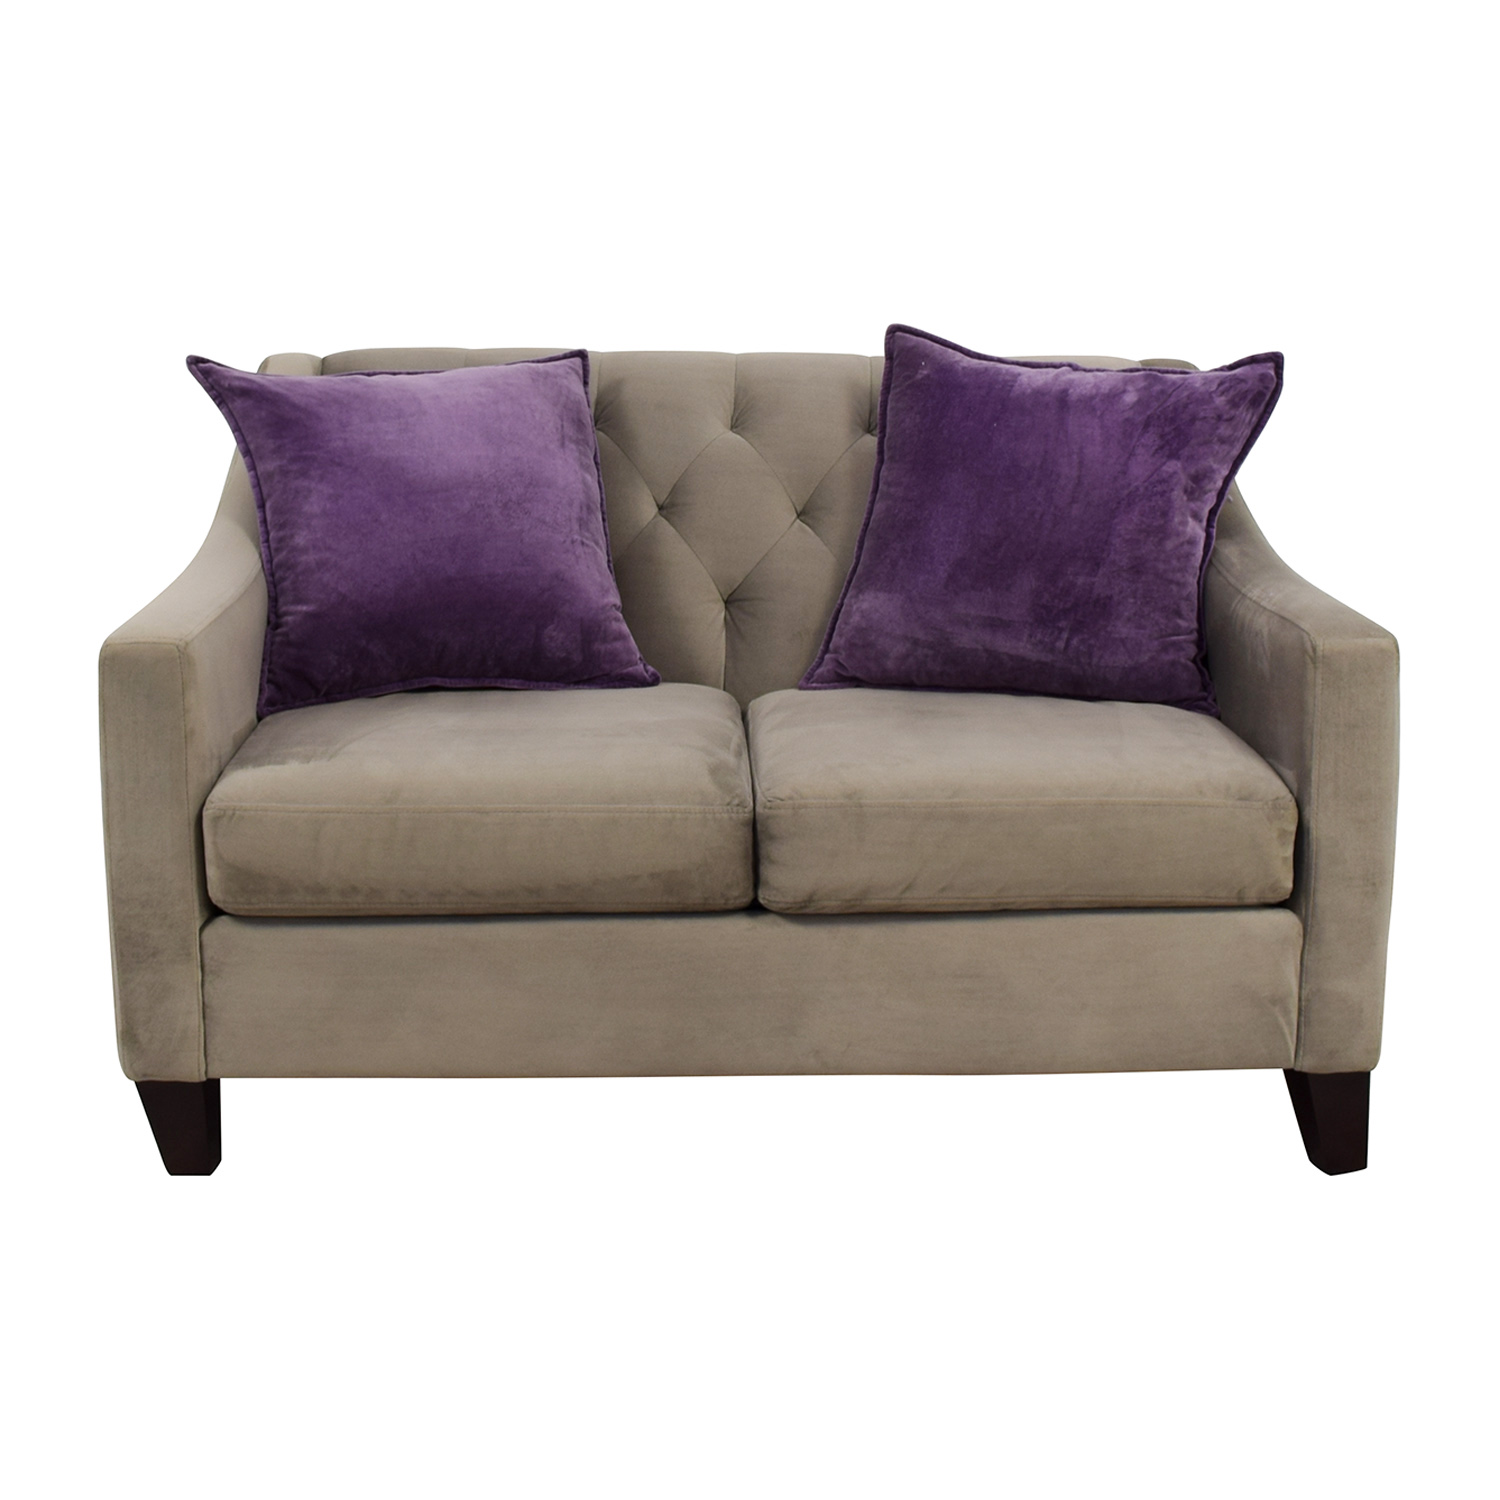 buy Better By Design Grey Two-Cushion Loveseat Better By Design